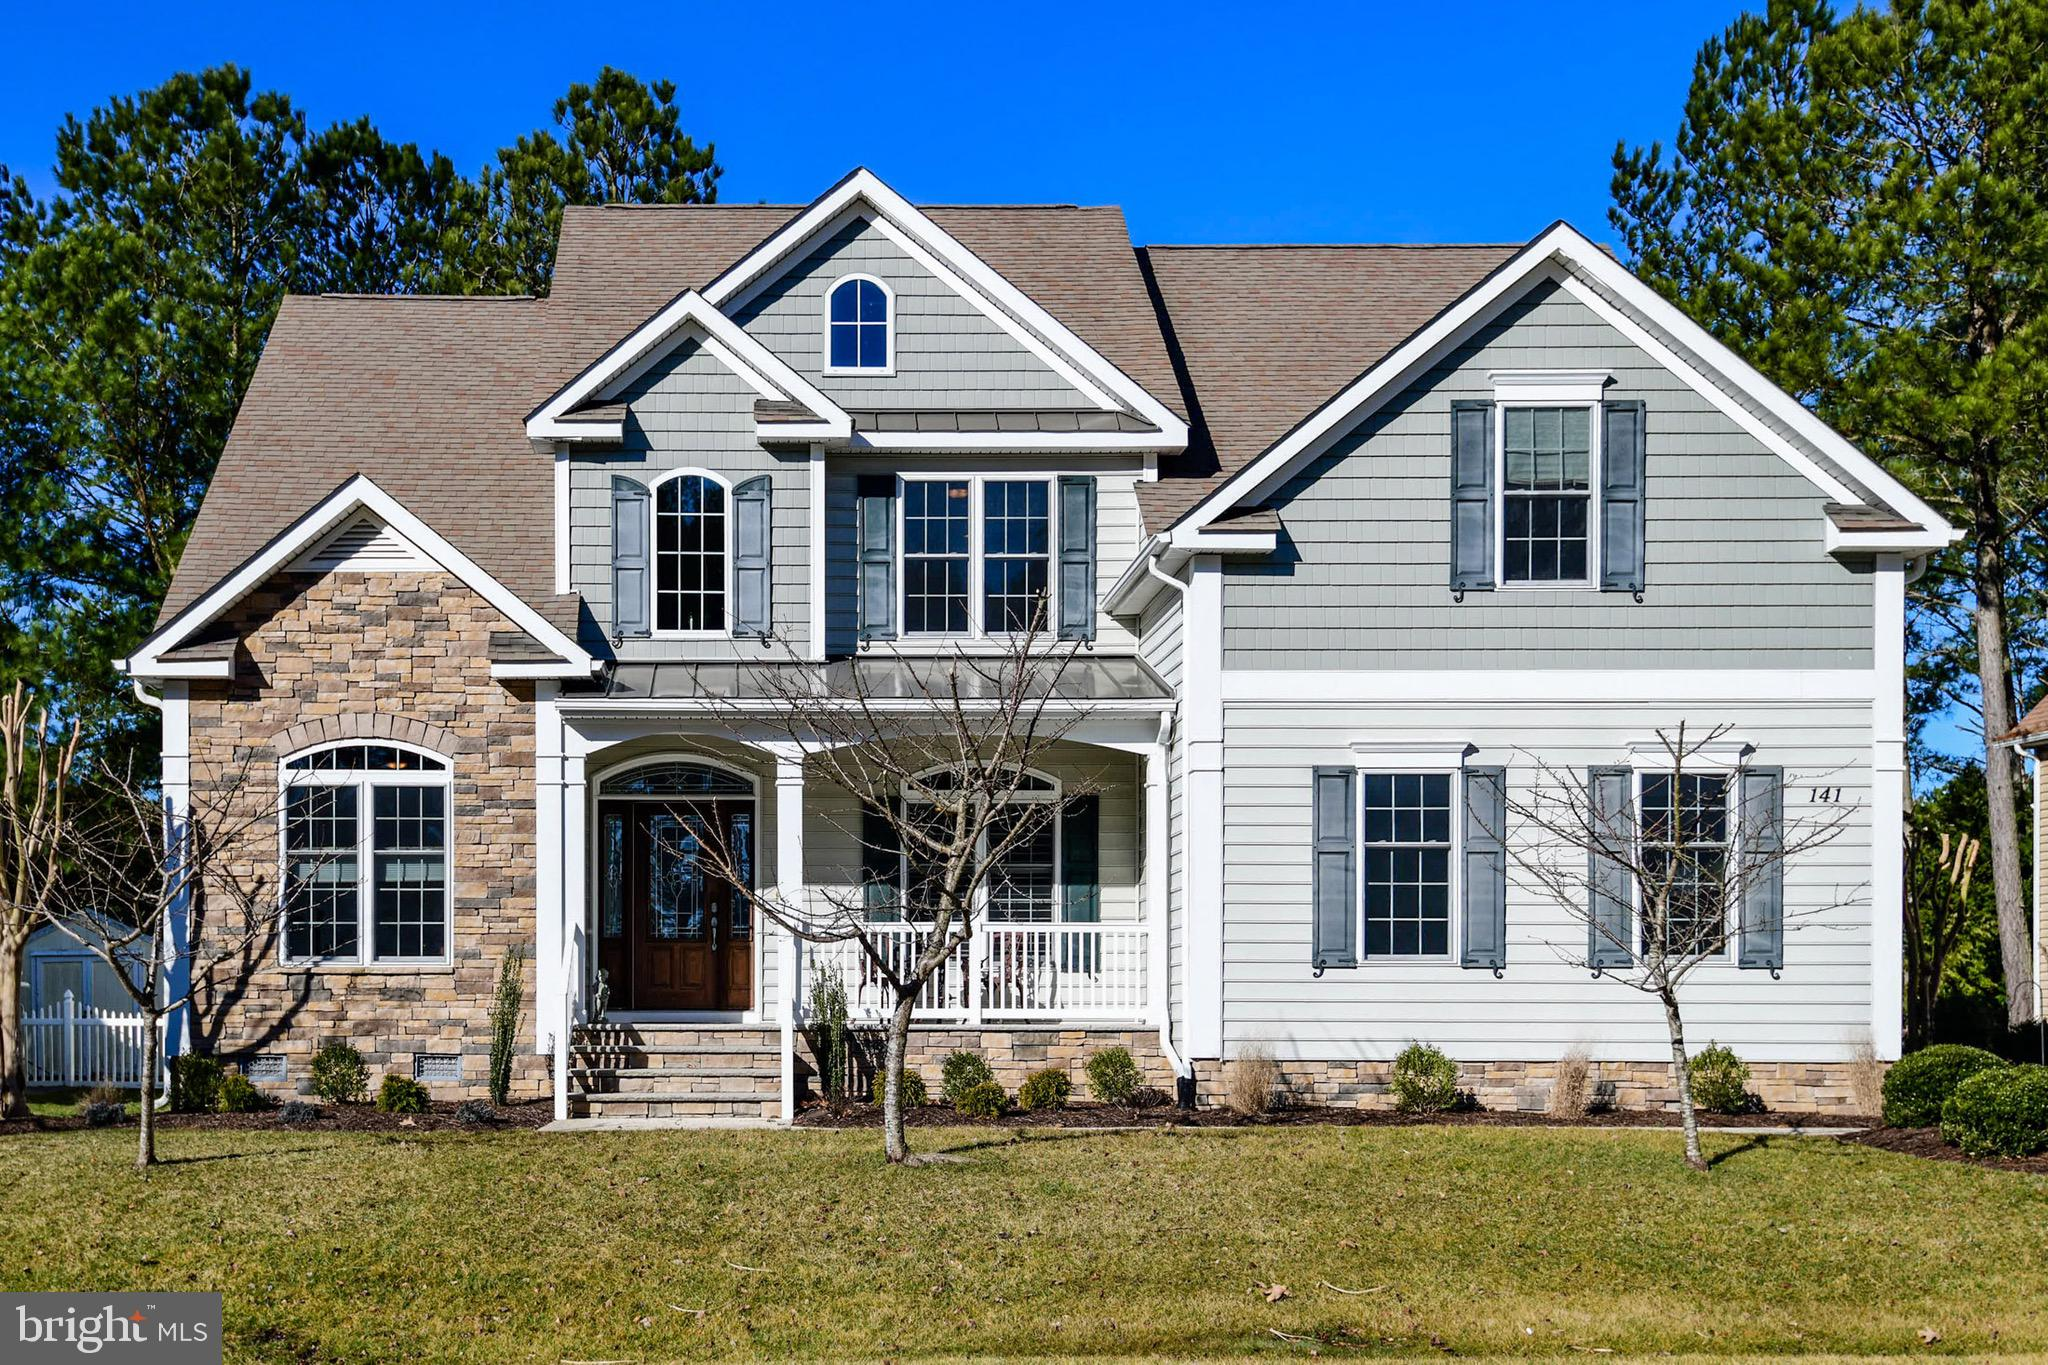 141 PINE FOREST DRIVE, OCEAN PINES, MD 21811